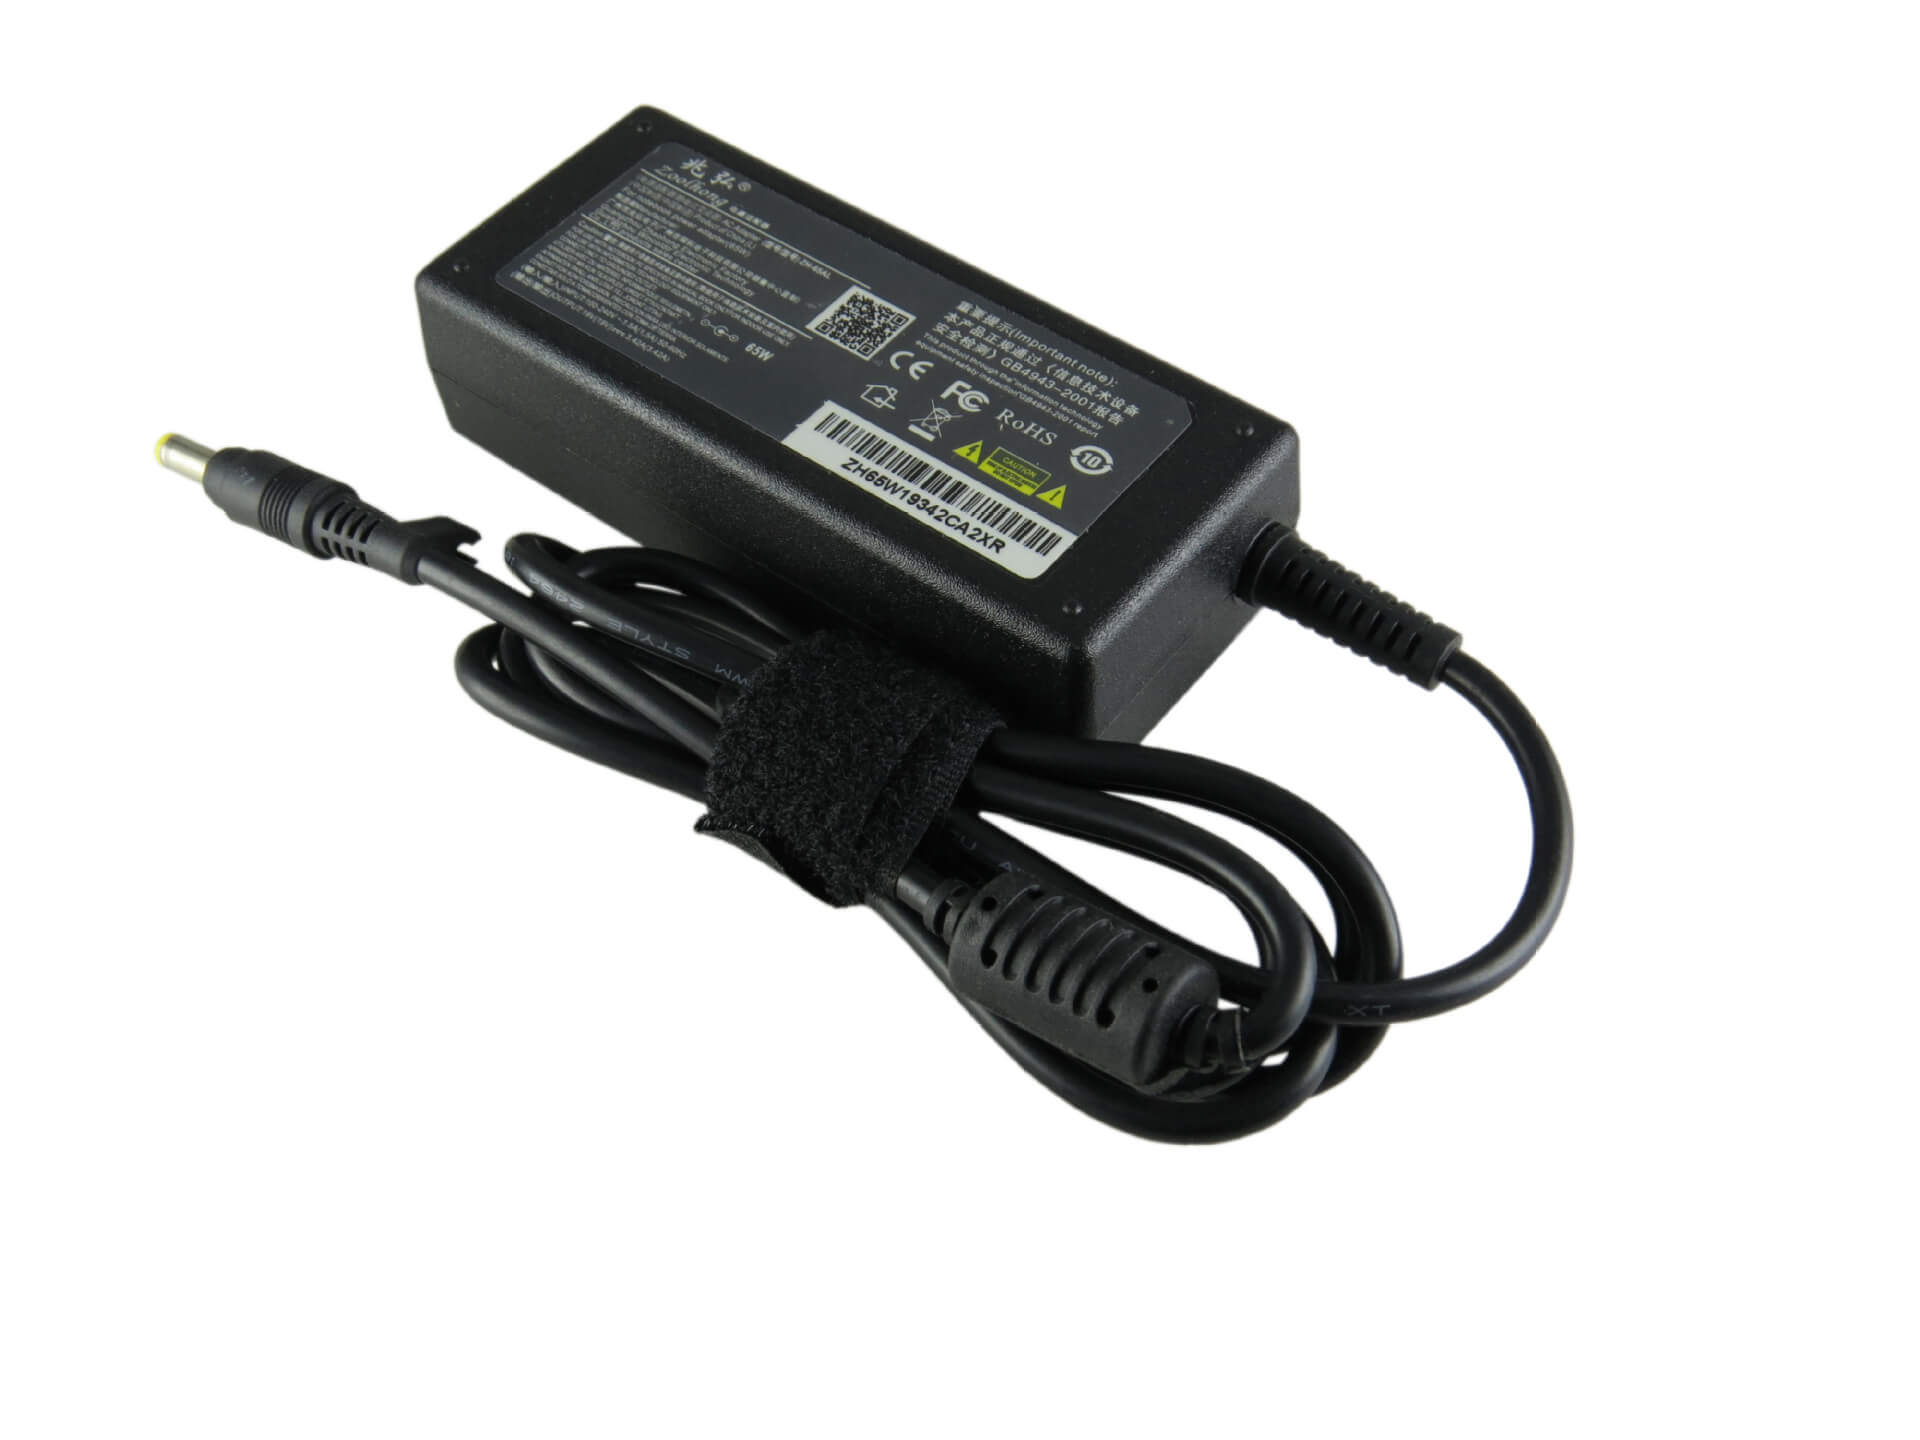 HP Laptop Charger 18.5V 3.5A | Computer Accessories | Hp ...